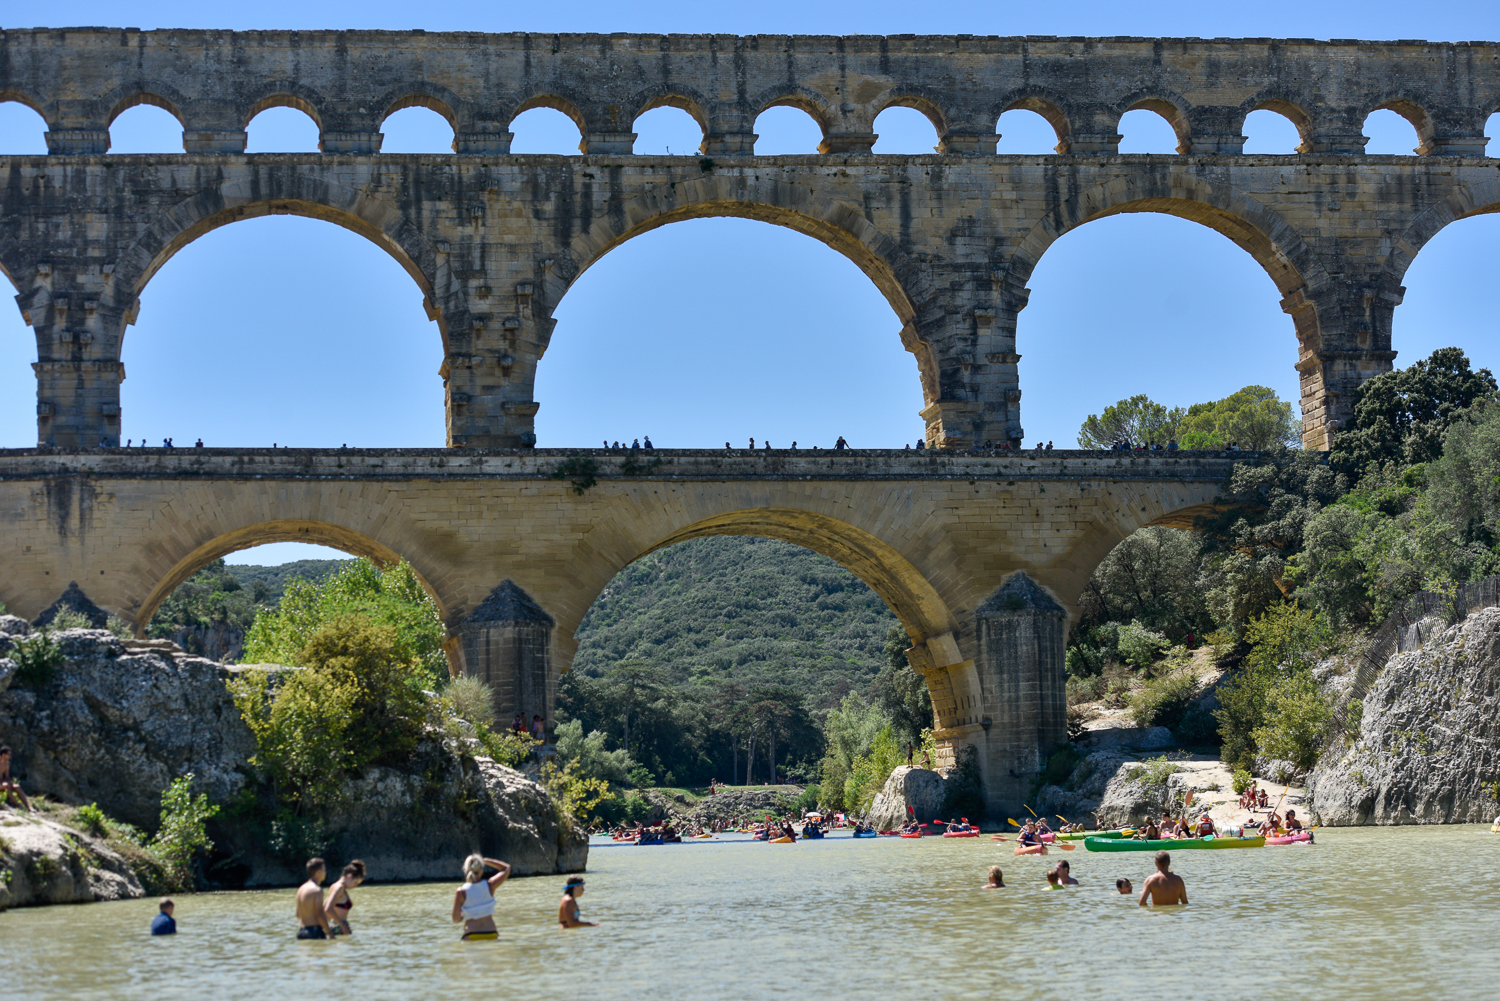 The Pont du Gard: Swimming in History